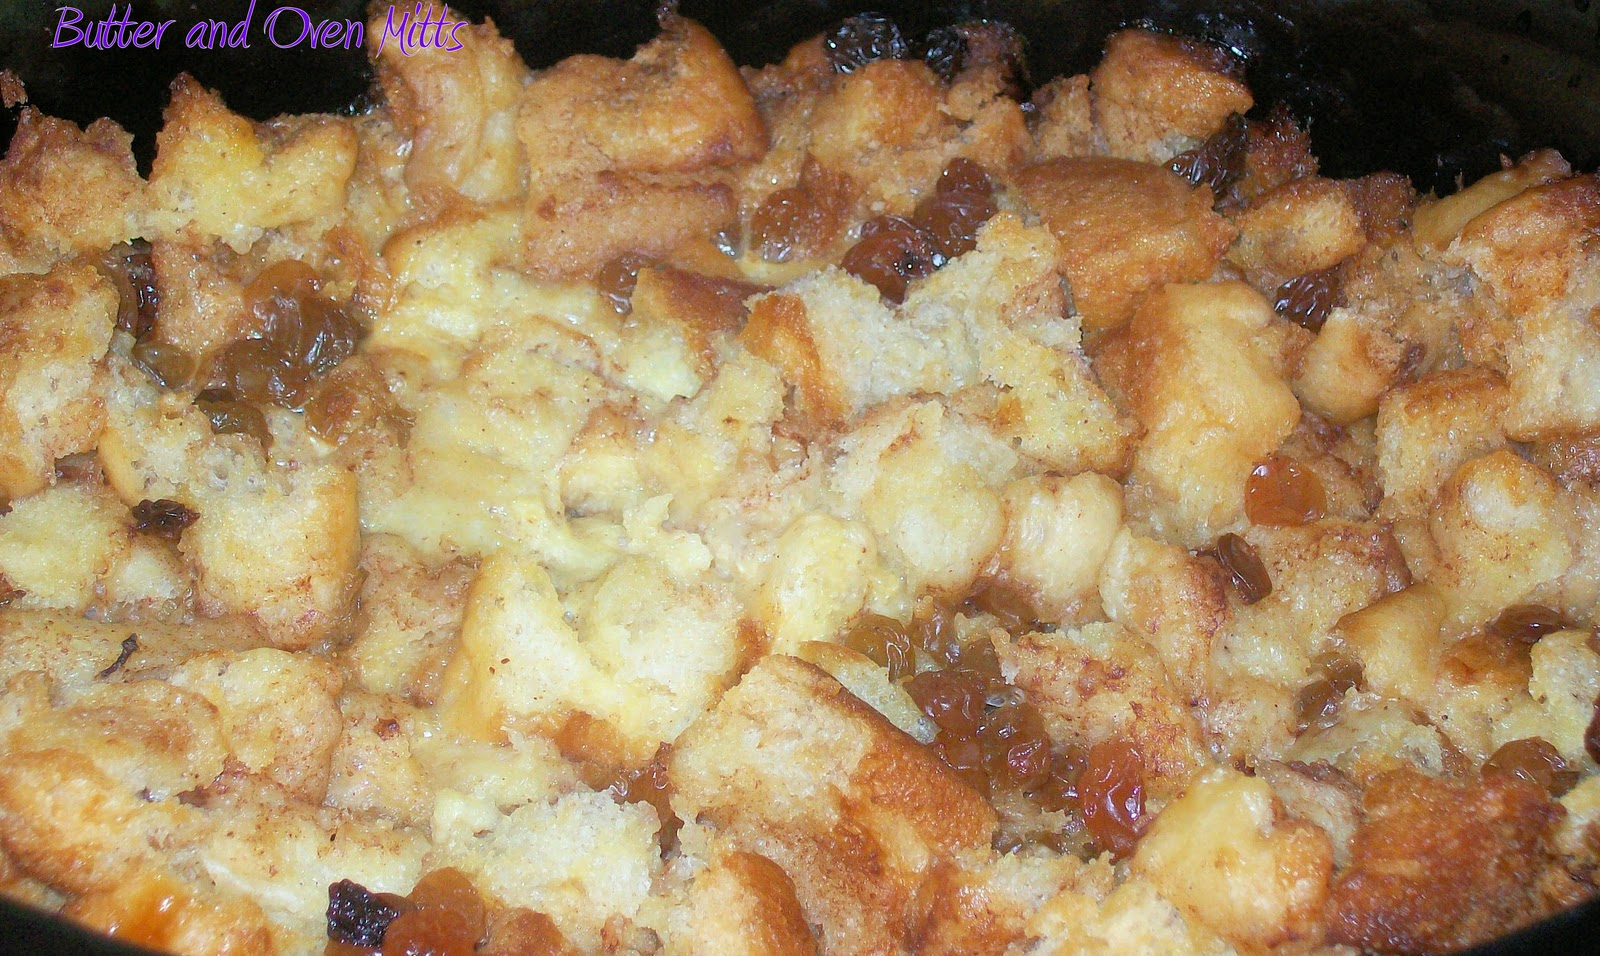 Butter and Oven Mitts: Slow Cooker Bread Pudding